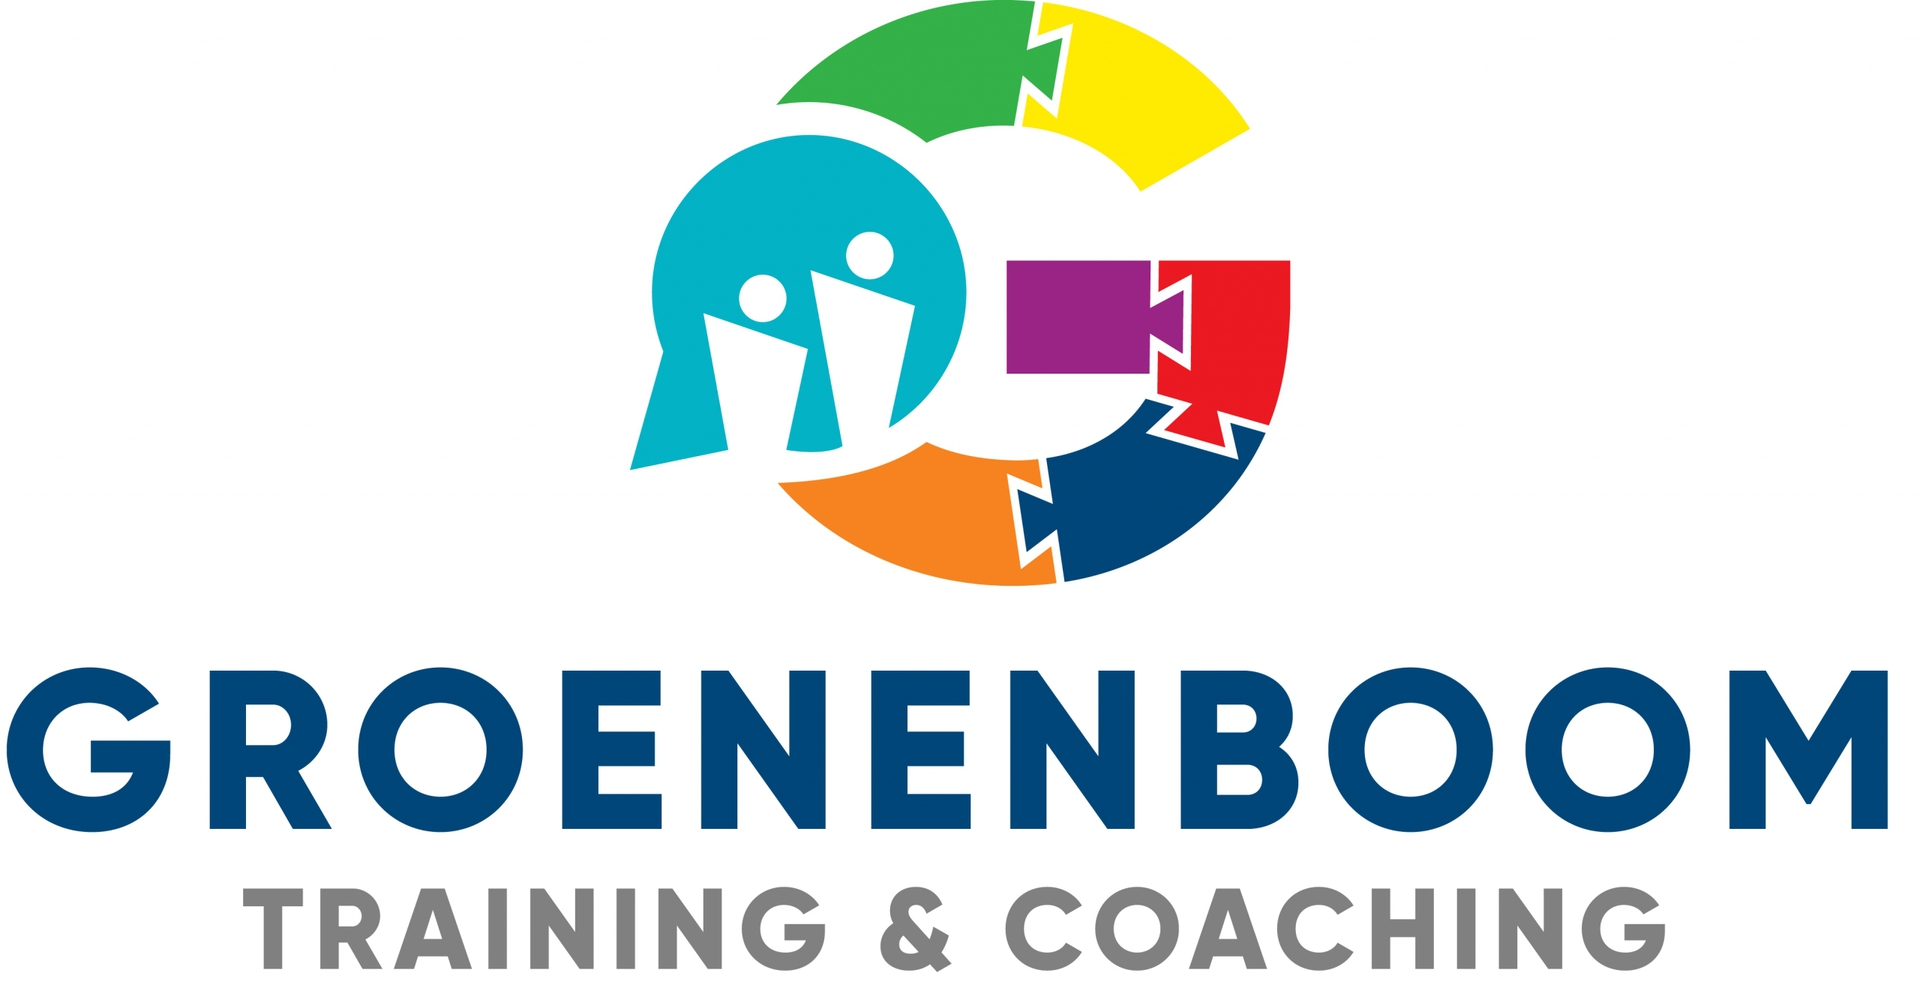 Groenenboom Training & Coaching